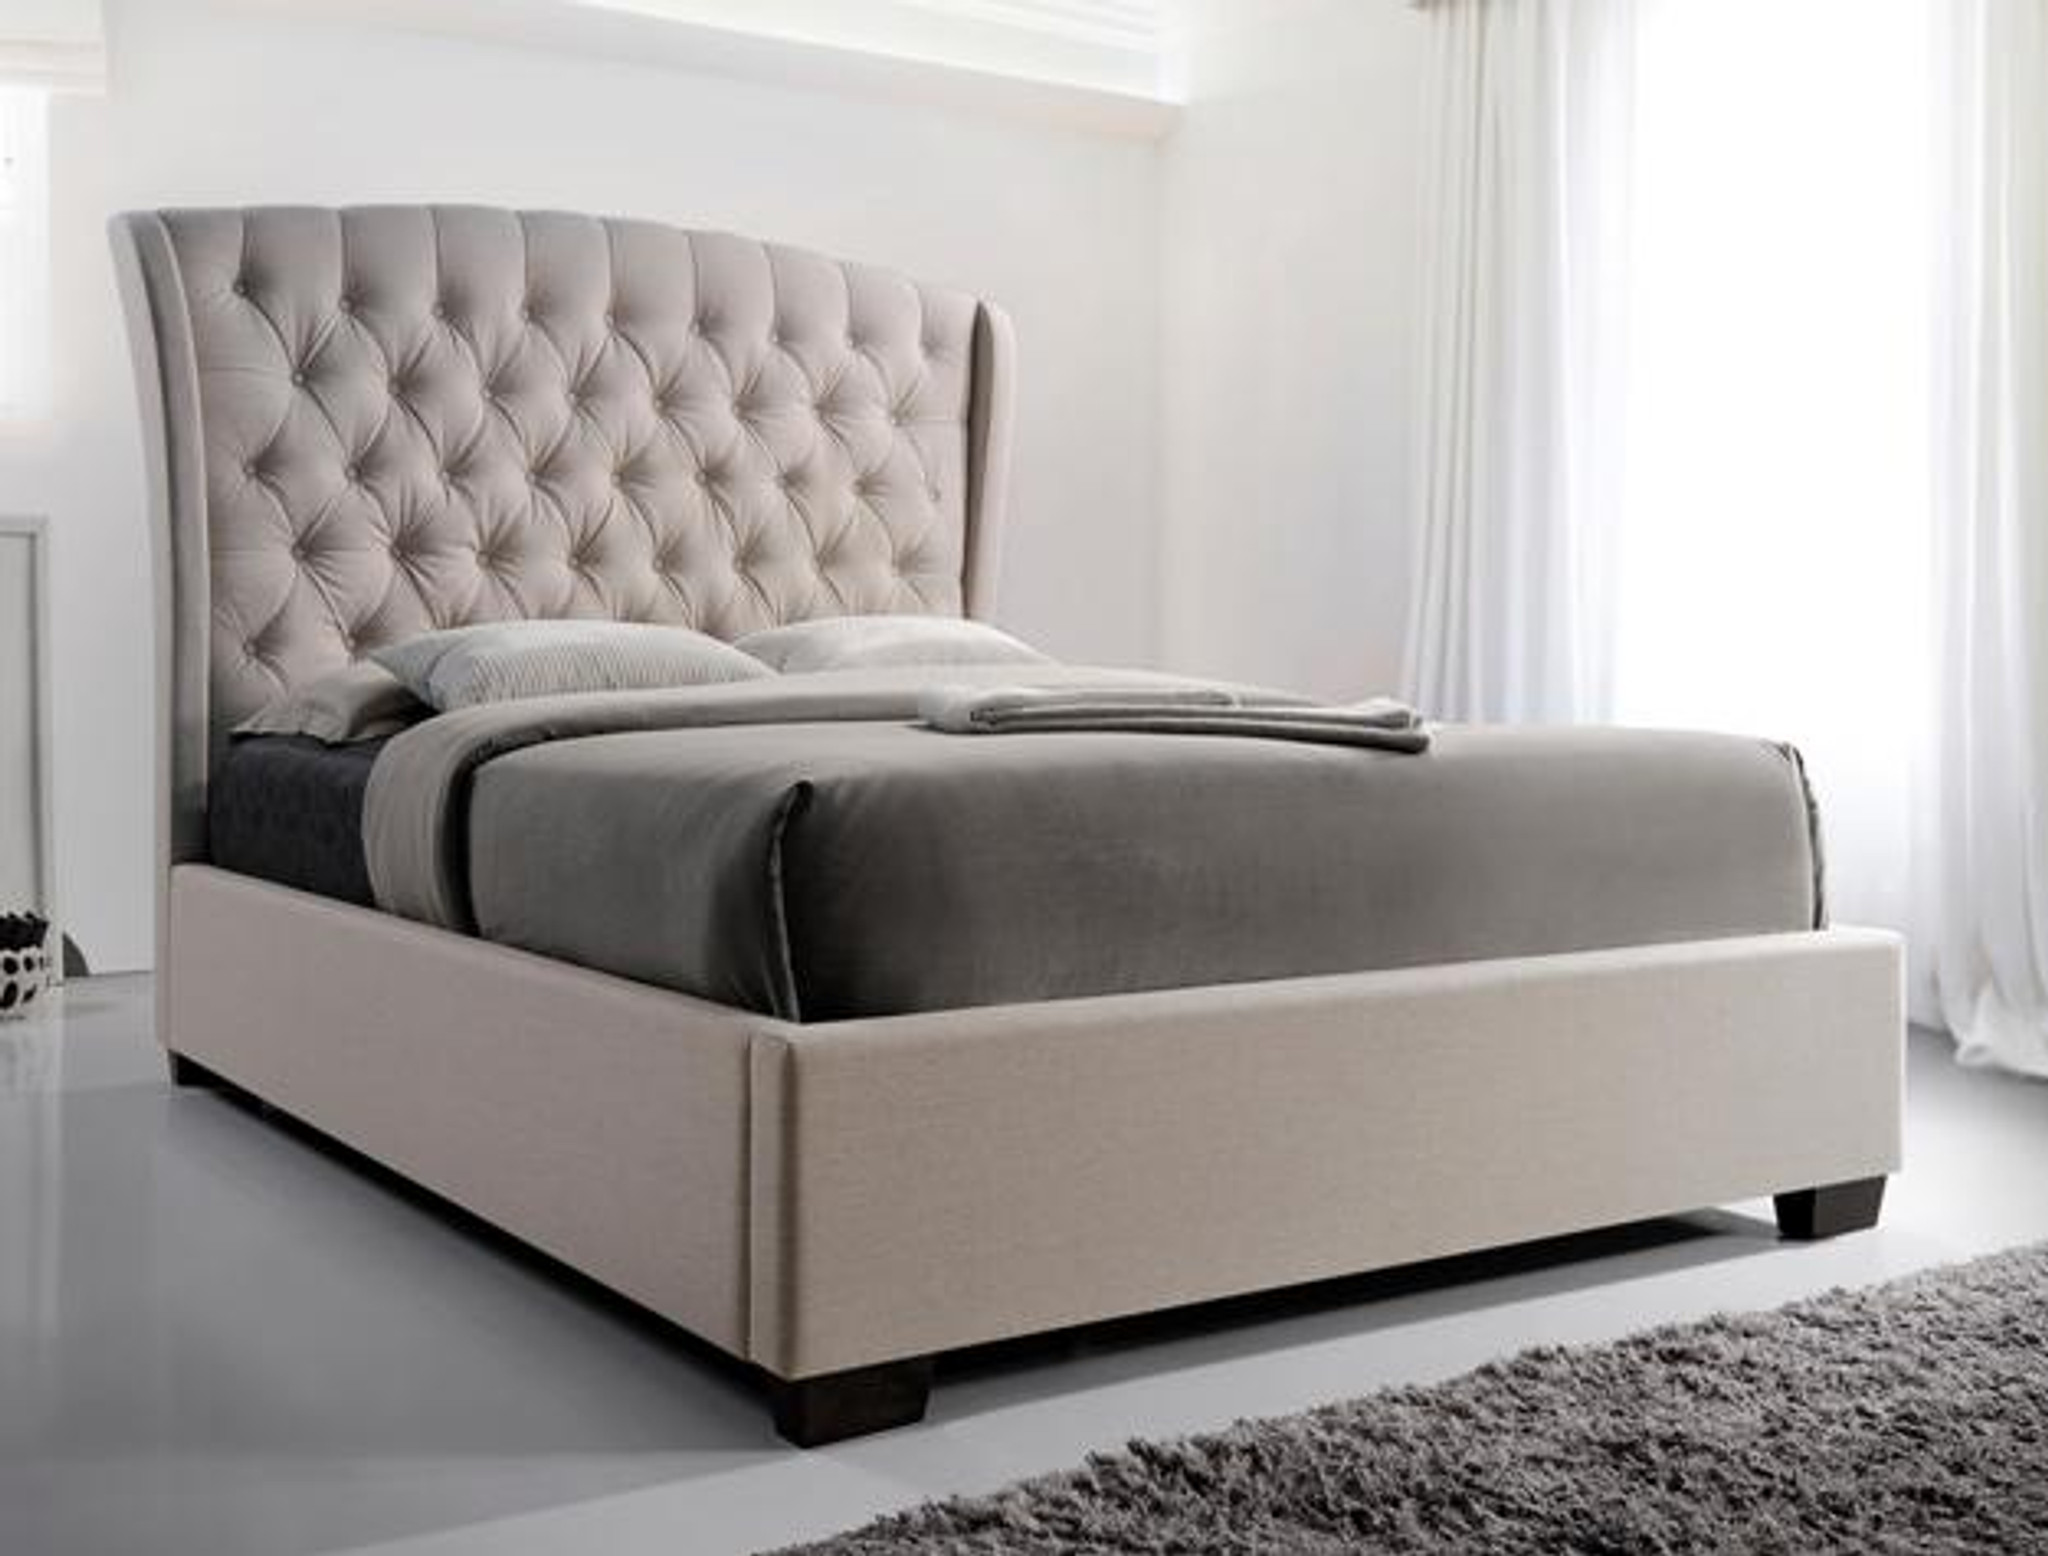 Fabulous Kaitlyn Botton Tufted Platform Bed No Boxspring Required Caraccident5 Cool Chair Designs And Ideas Caraccident5Info